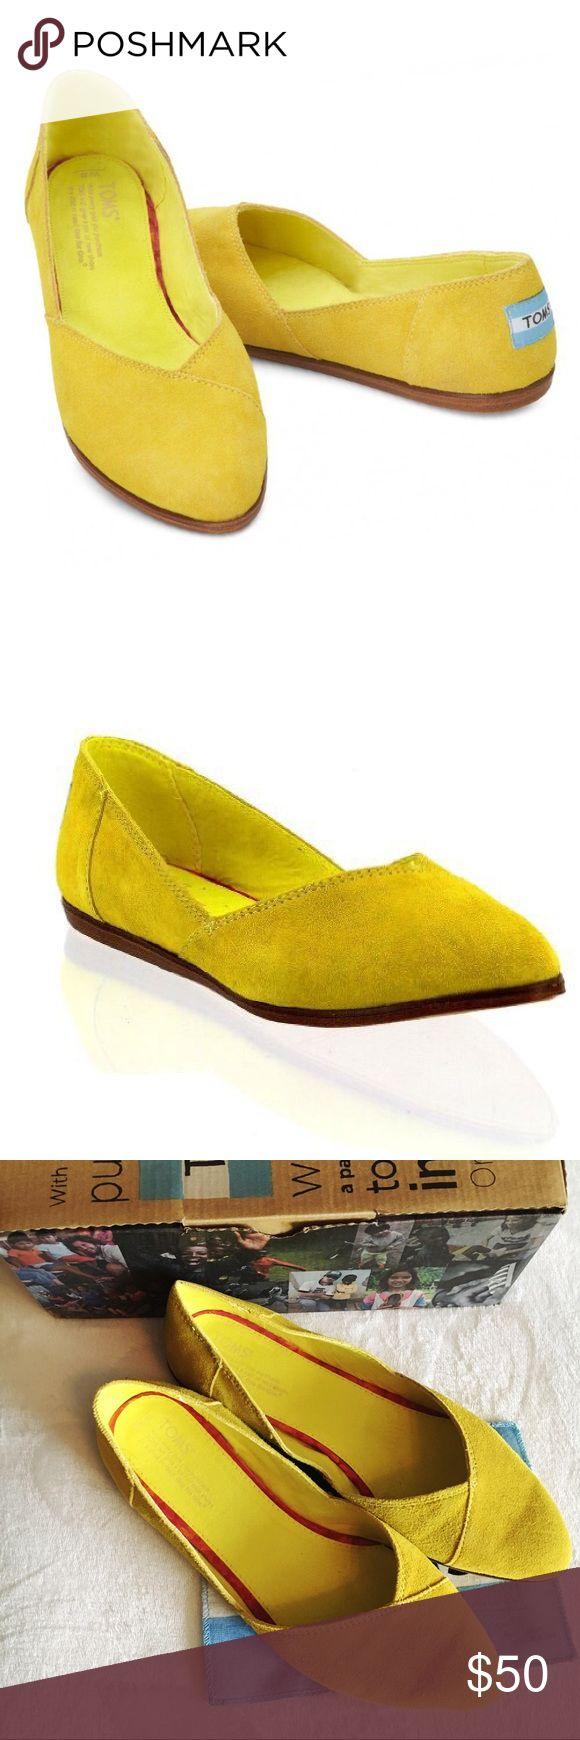 Adorable Toms Jutti Flats in Blazing Yellow Excellent used condition with box and Toms flag. Fun yellow color for spring and summer. Bring your look together with the refreshing TOMS Jutti Flat. This slip-on casual shows off a fun embossed upper for extra appeal. Comfort Insole Antimicrobial sock liner Rubber outsole Fit: True To Size Insole: Suede Outsole: Mixed Rubber Upper: Suede Toms Shoes Flats & Loafers